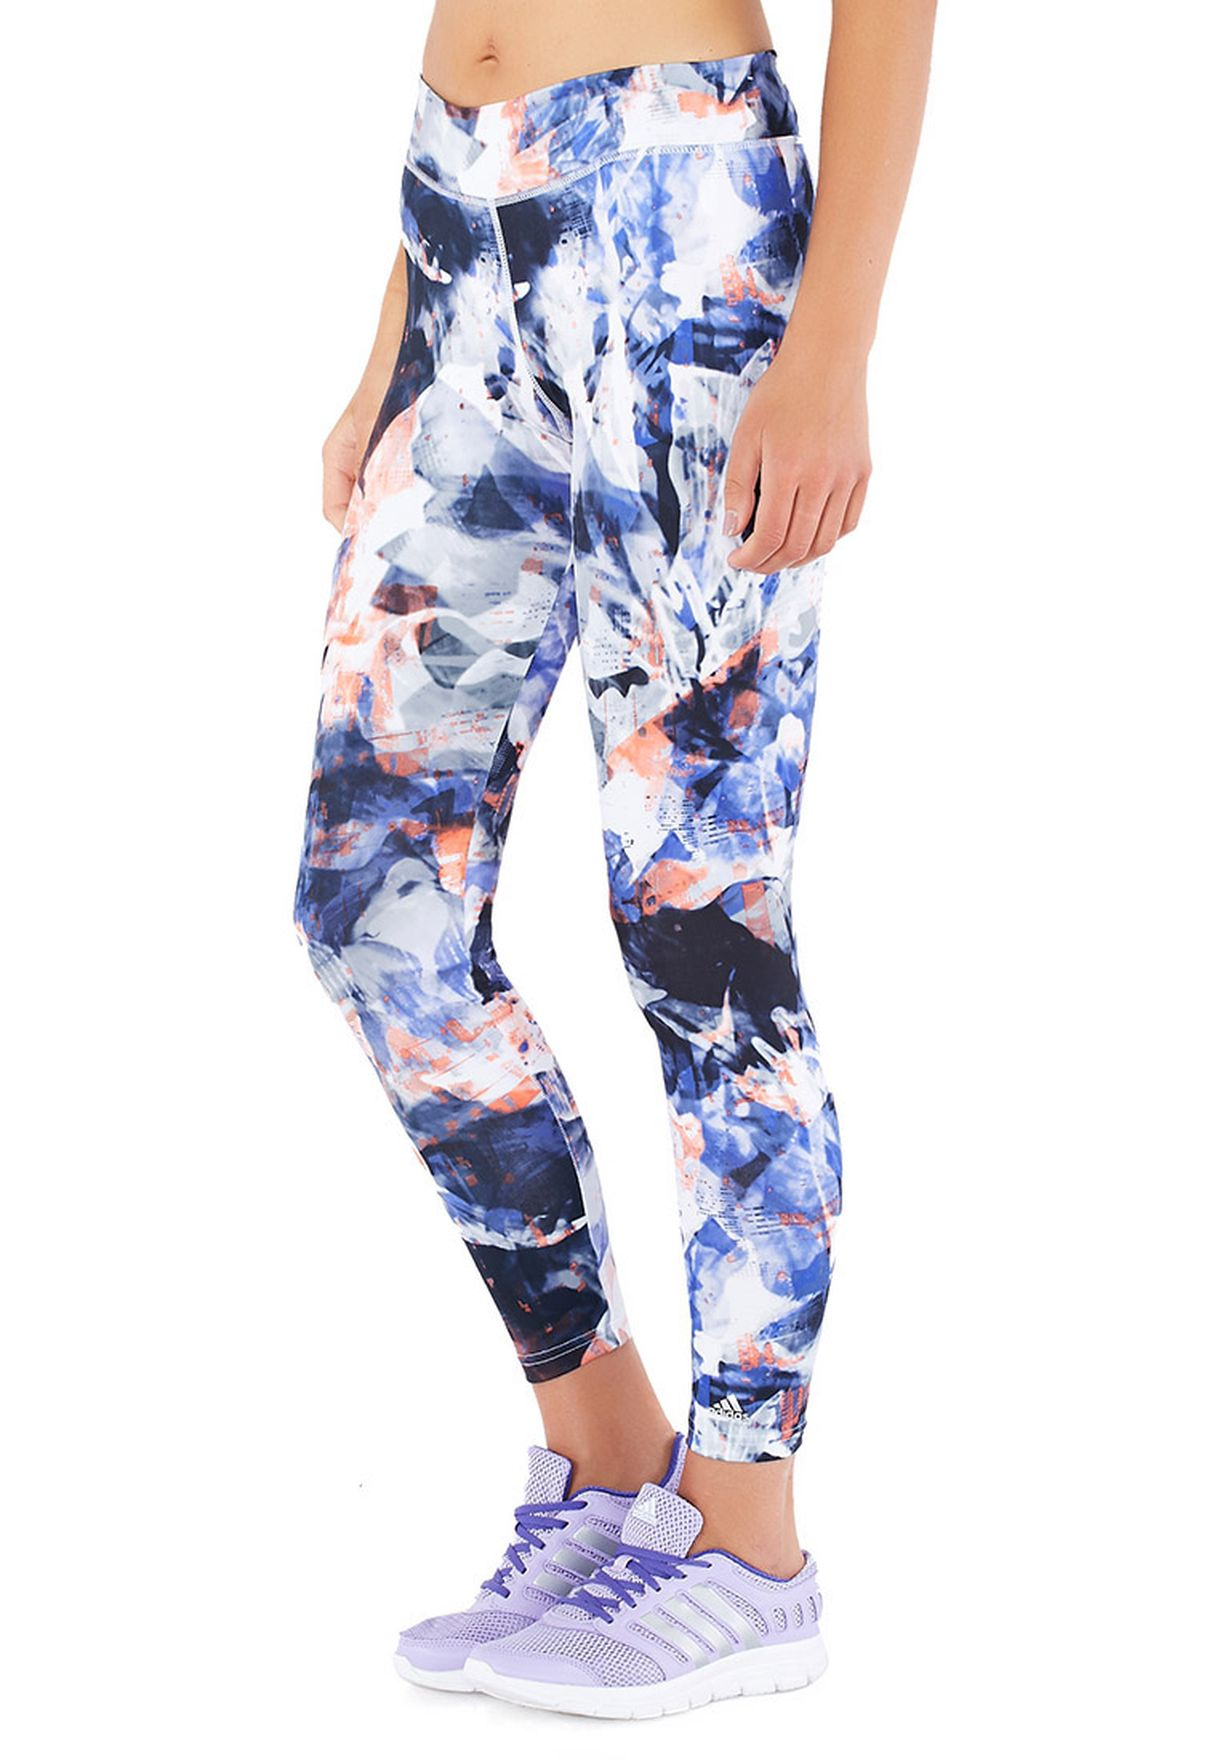 b99bdc41a6a58 Shop adidas multicolor Ultimate All Over Print Tights S19394 for ...